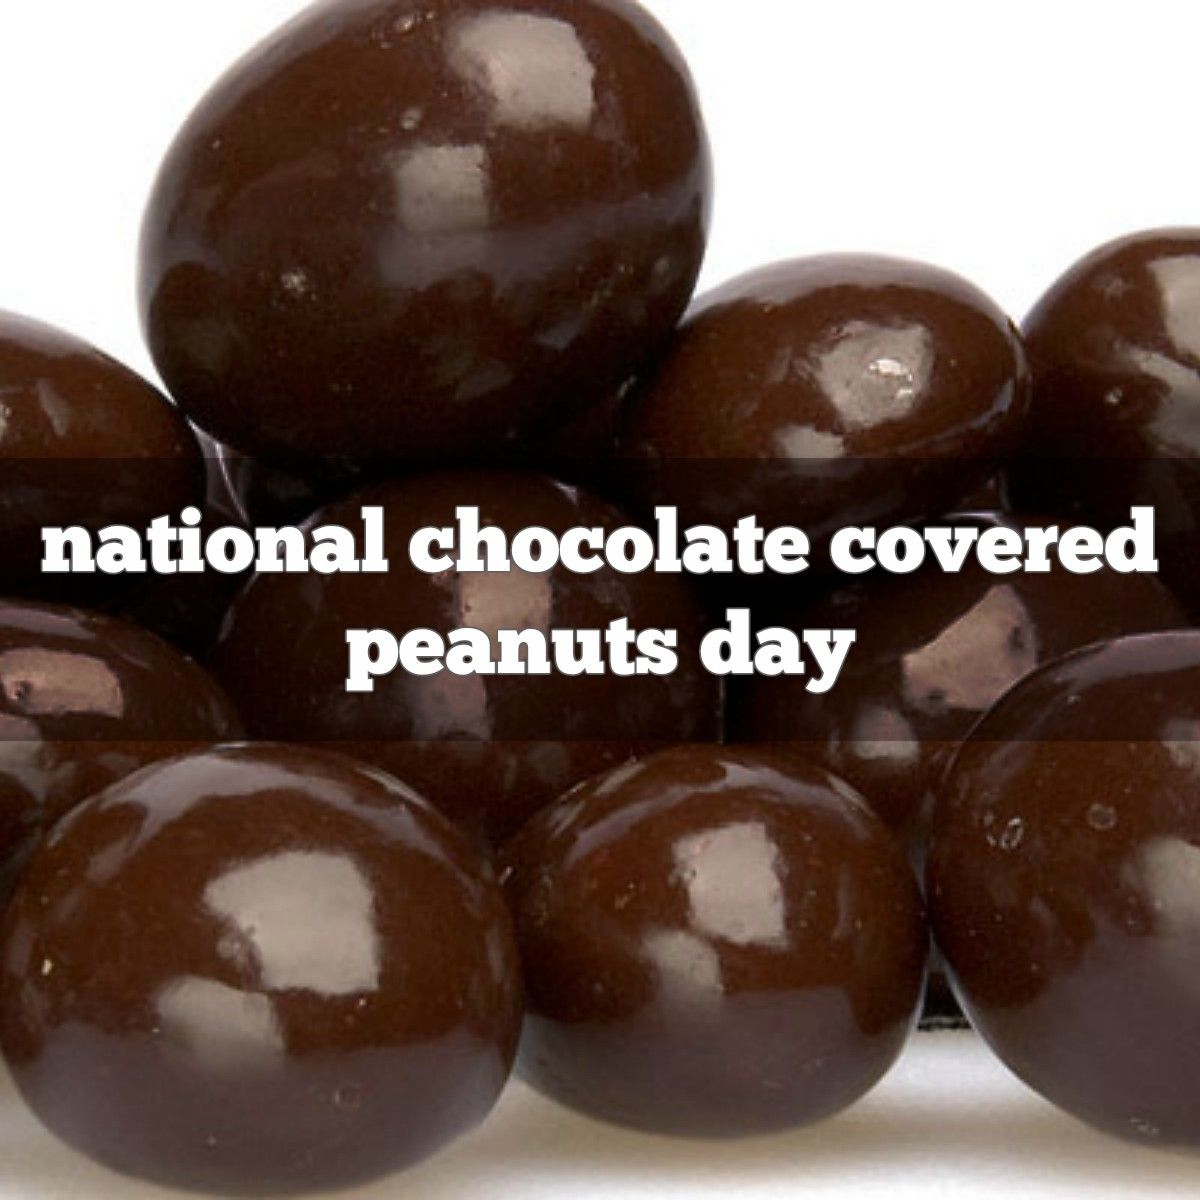 February 25th Is National Chocolate Covered Peanut Day Chocolate Covered Peanuts Chocolate Covered Foodie Holidays